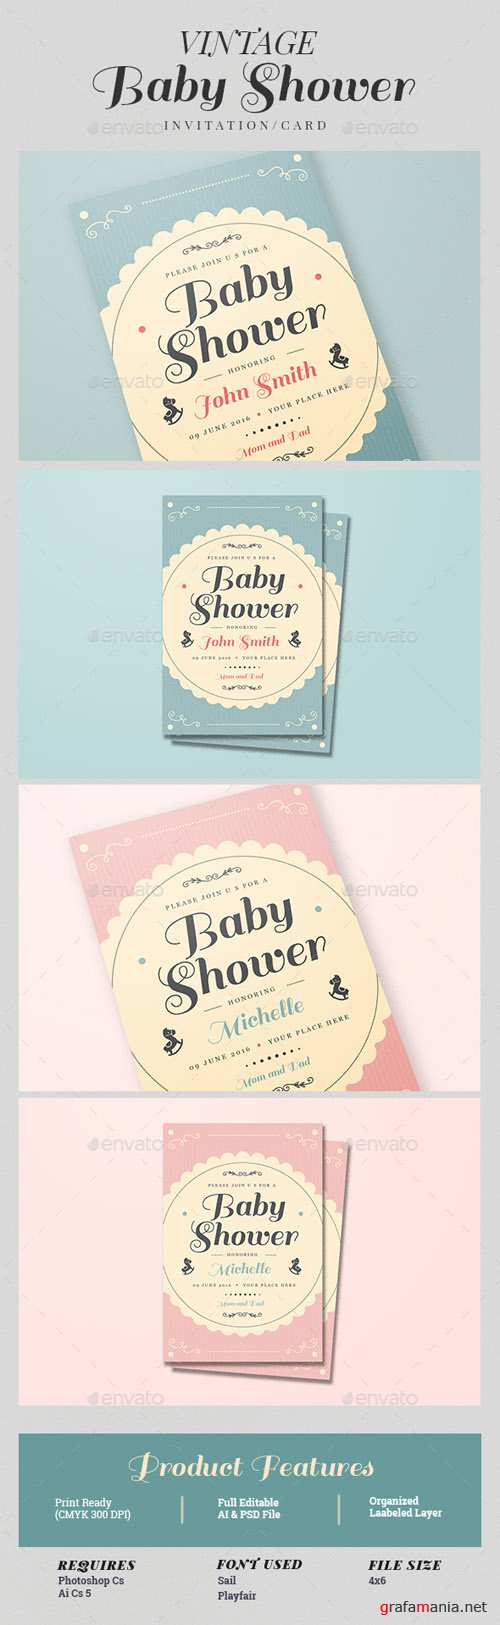 Vintage Baby Shower Invitation/Card 15528279